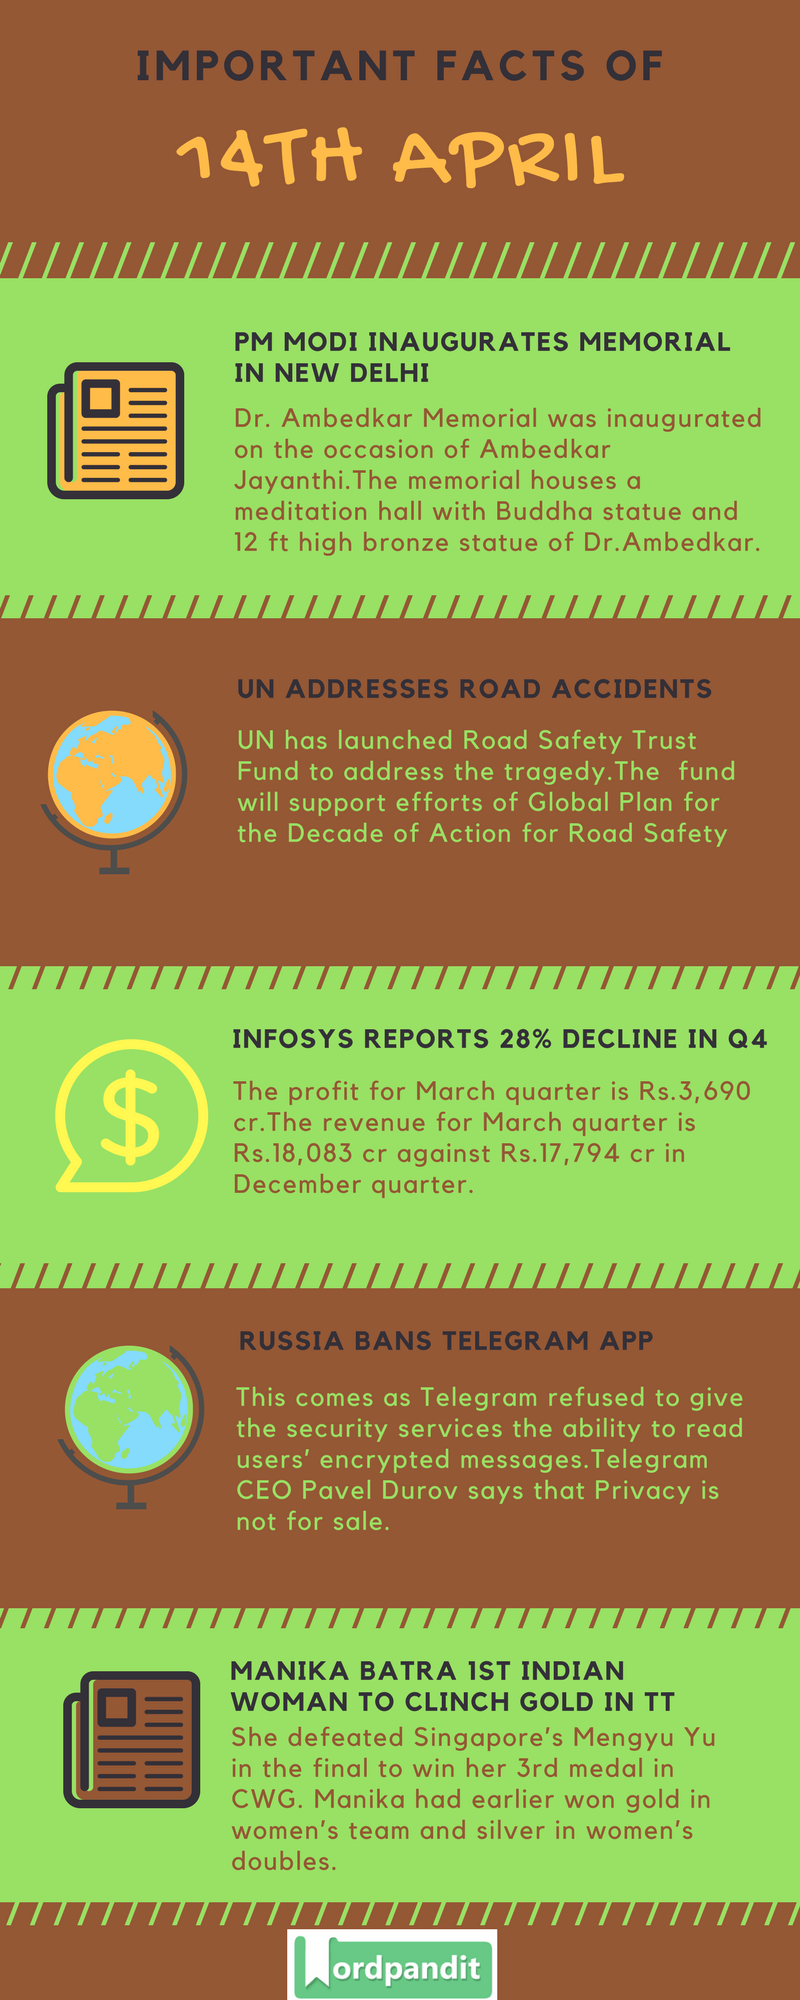 Daily Current Affairs 14 April 2018 Current Affairs Quiz April 14 2018 Current Affairs Infographic